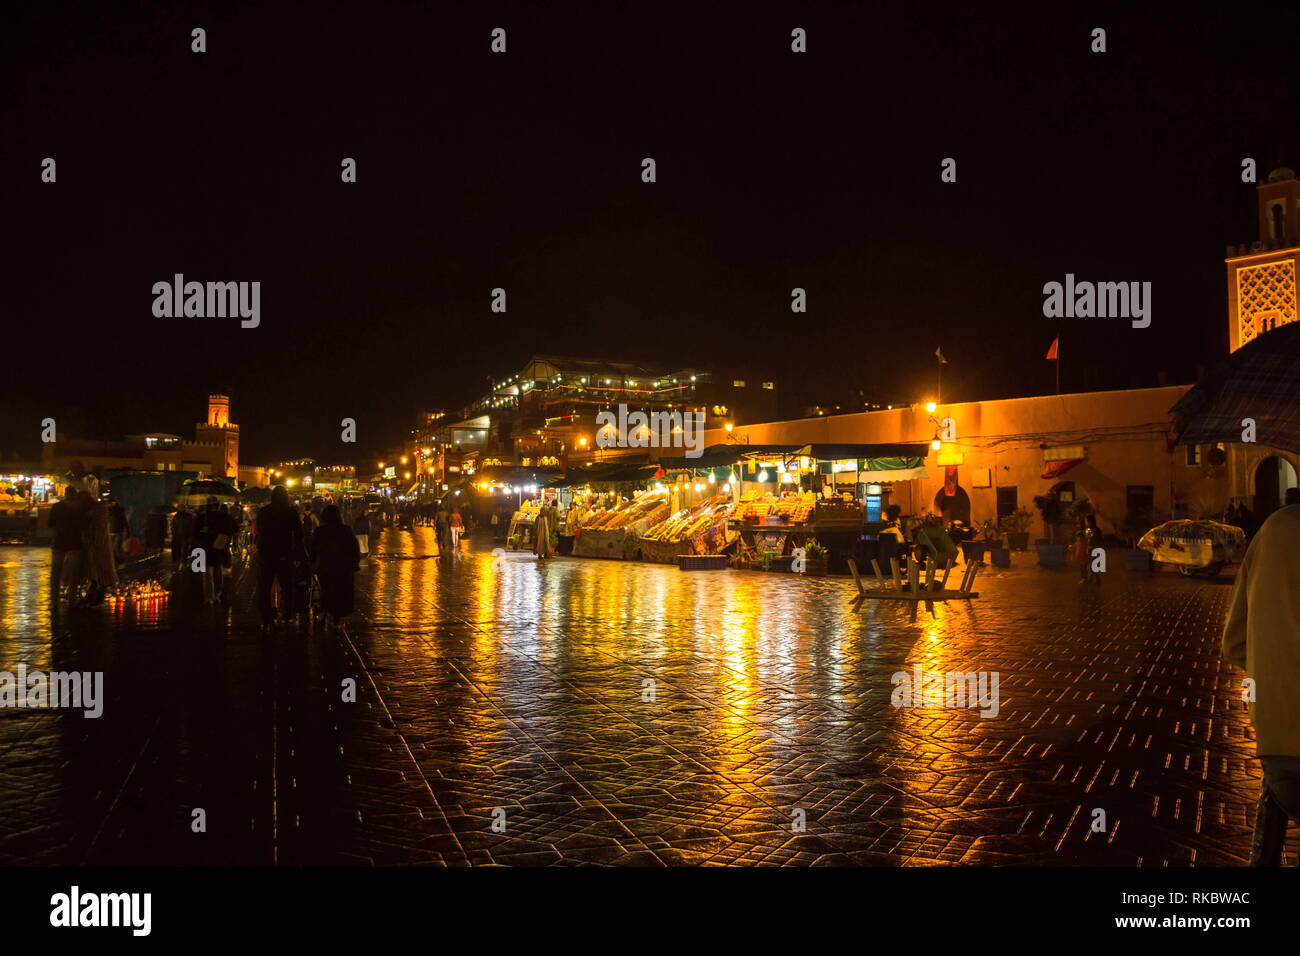 Famous Jemaa el Fna square crowded at dusk. Marrakesh, Morocco Stock Photo